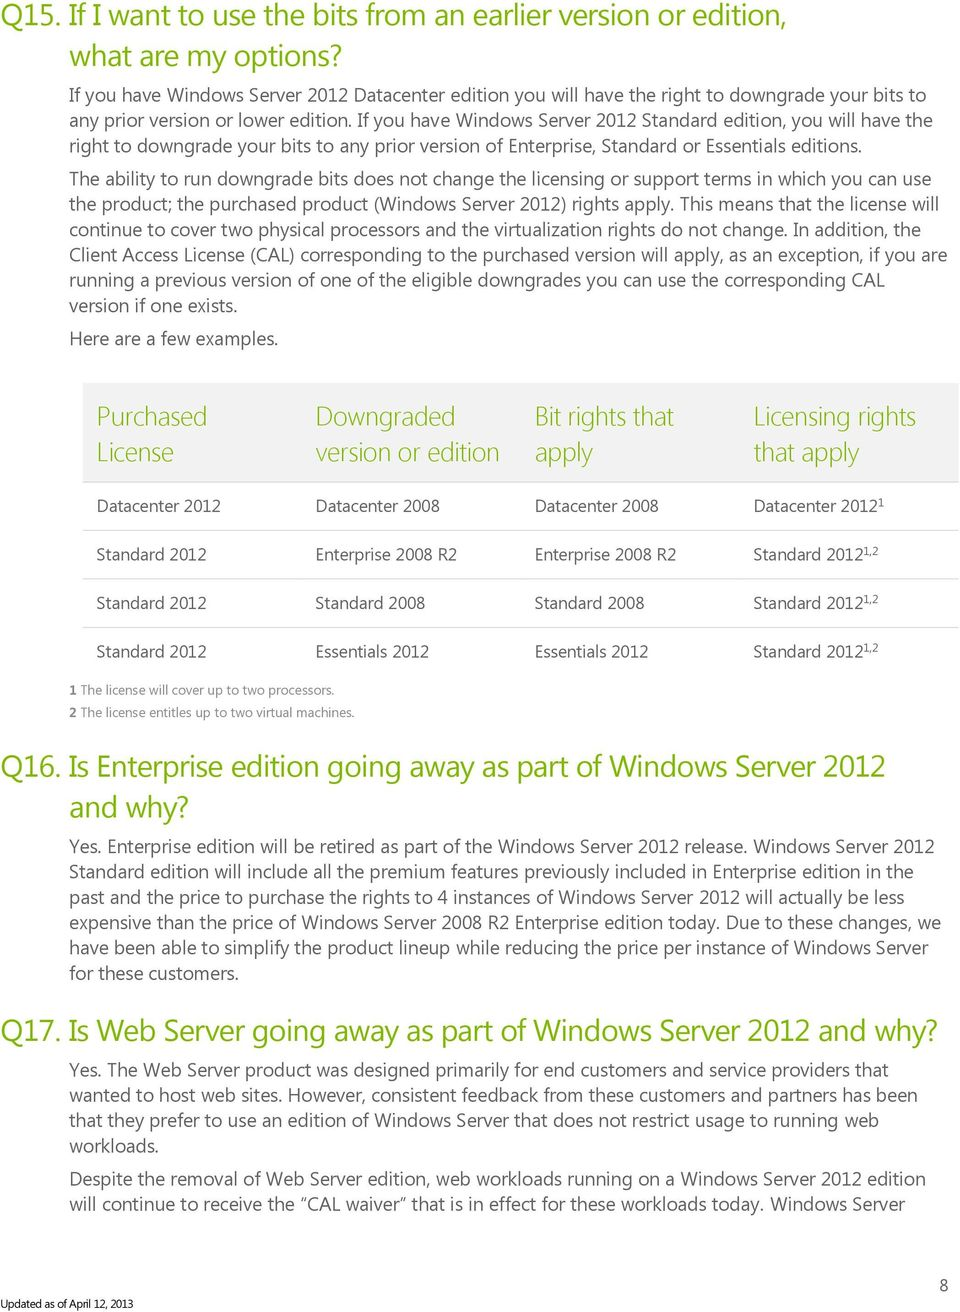 If you have Windows Server 2012 Standard edition, you will have the right to downgrade your bits to any prior version of Enterprise, Standard or Essentials editions.